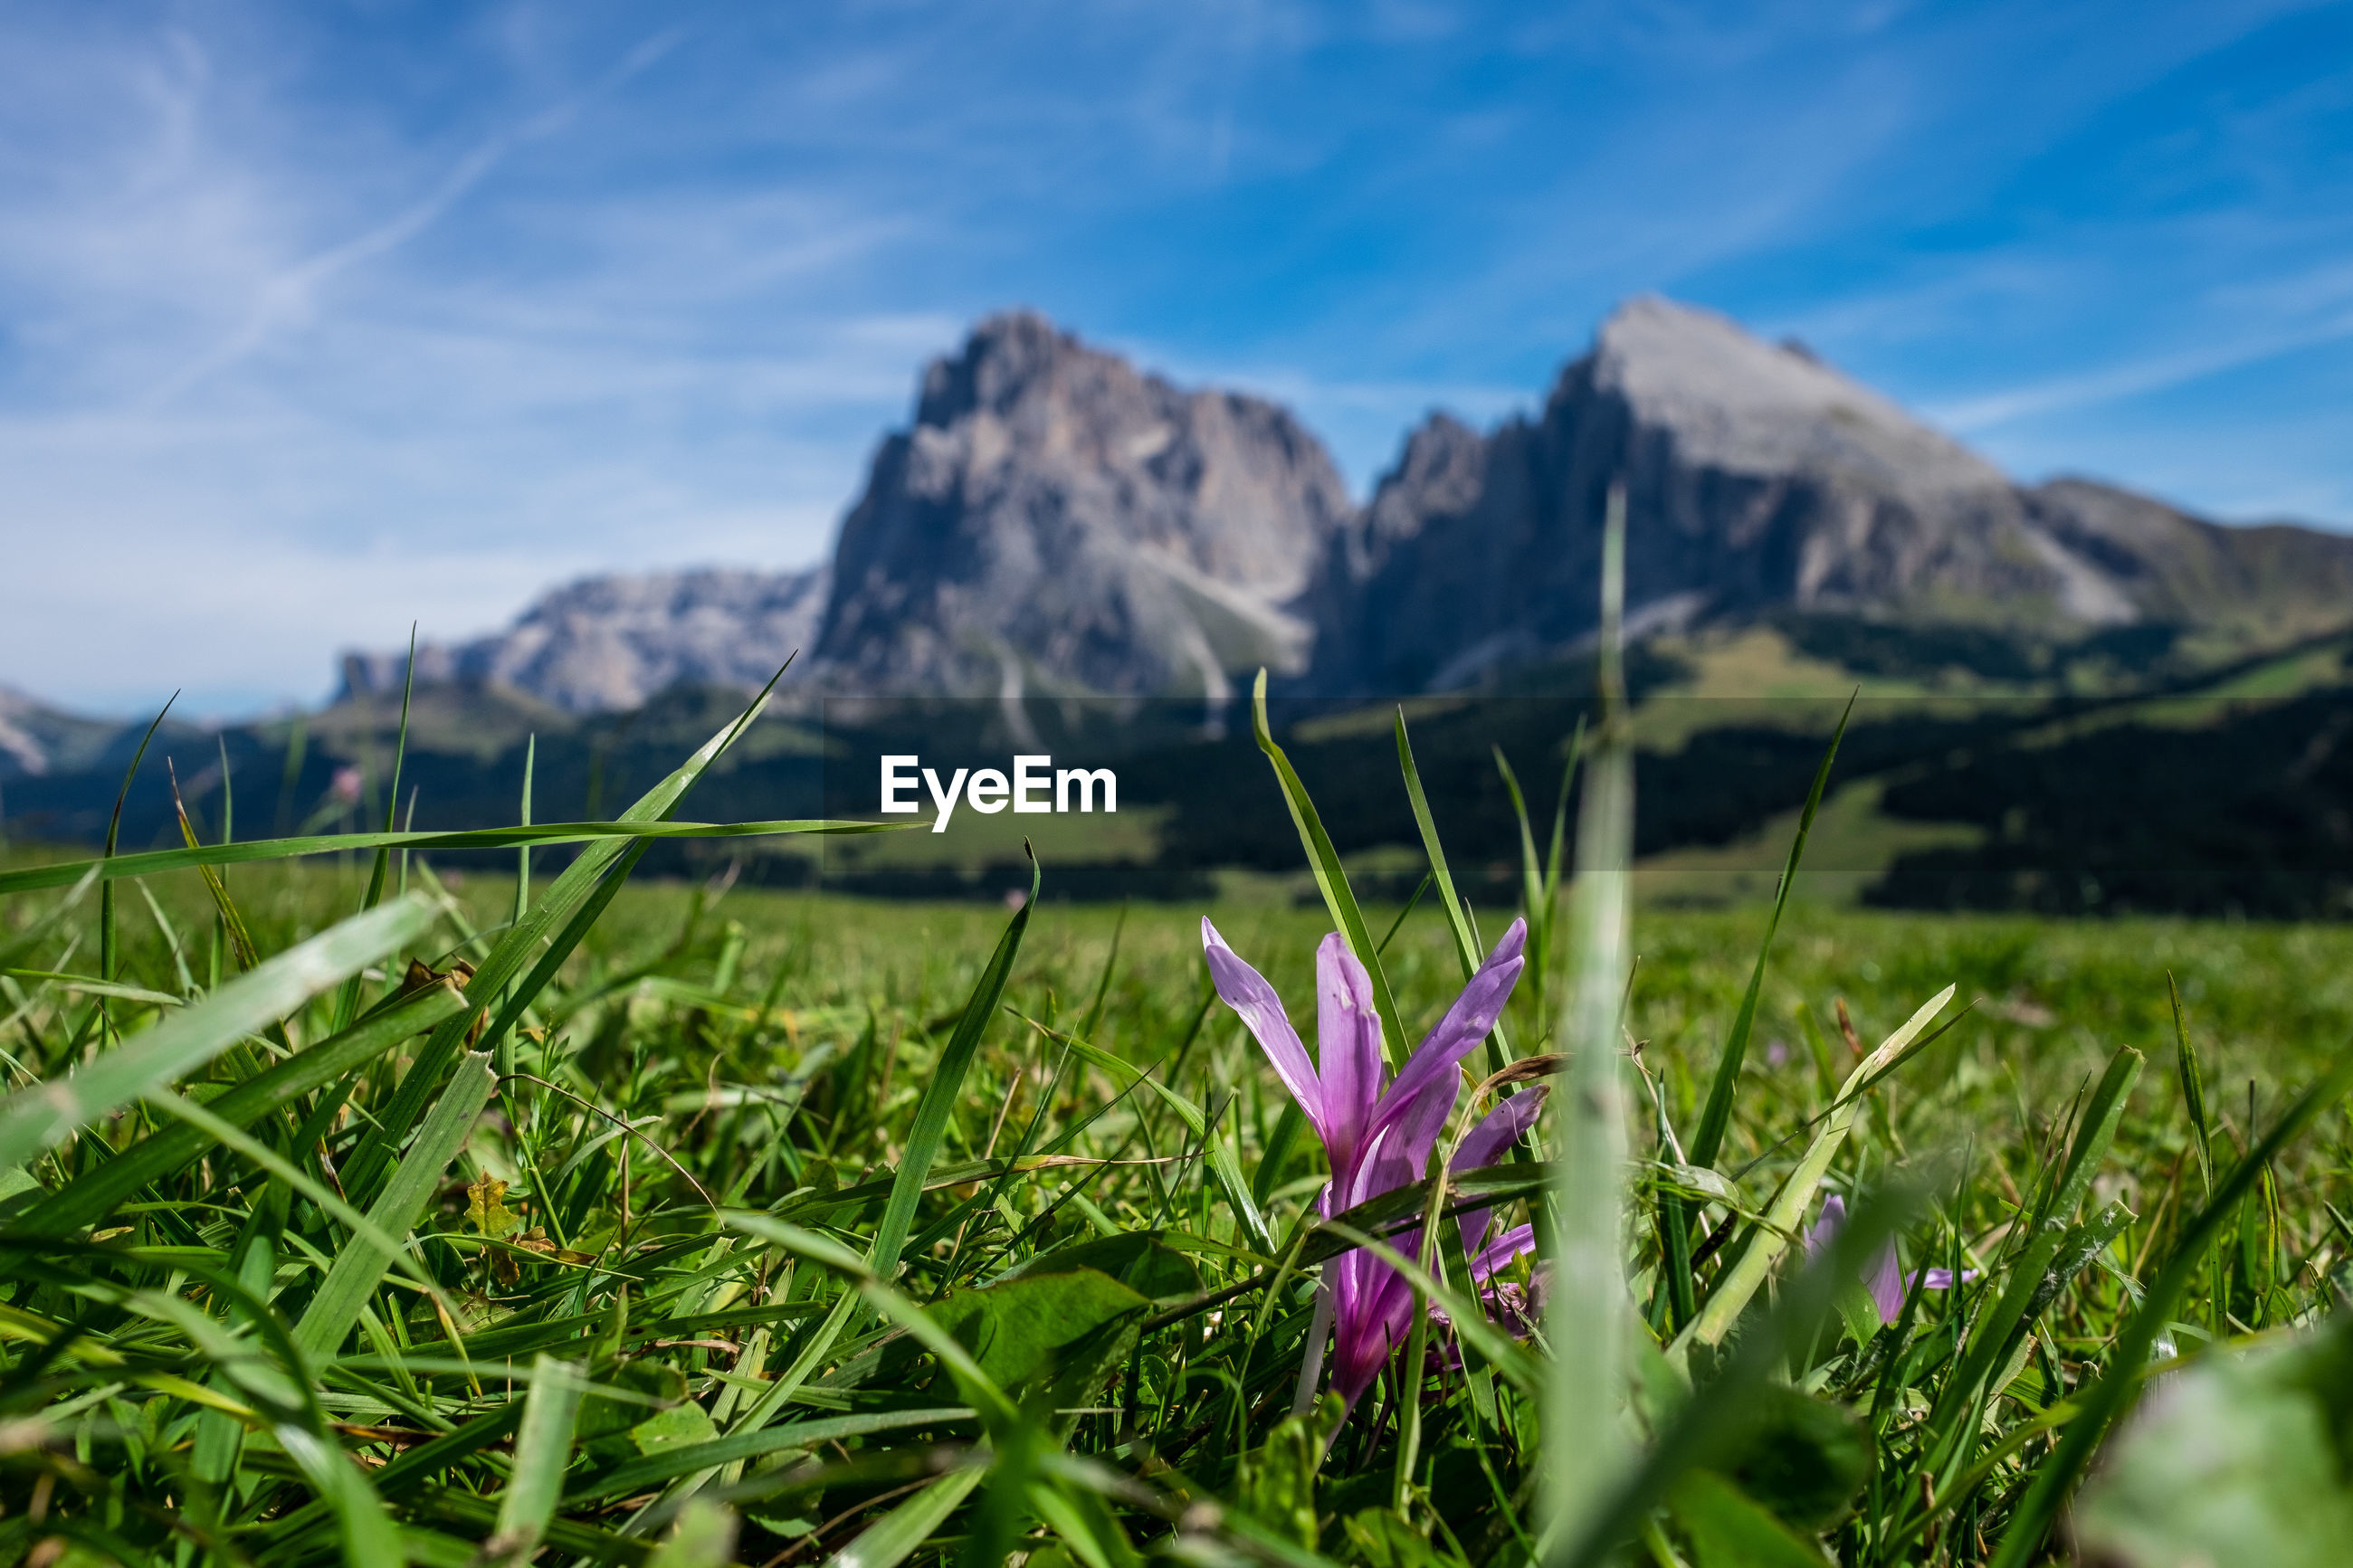 PURPLE CROCUS FLOWERS ON FIELD AGAINST MOUNTAINS